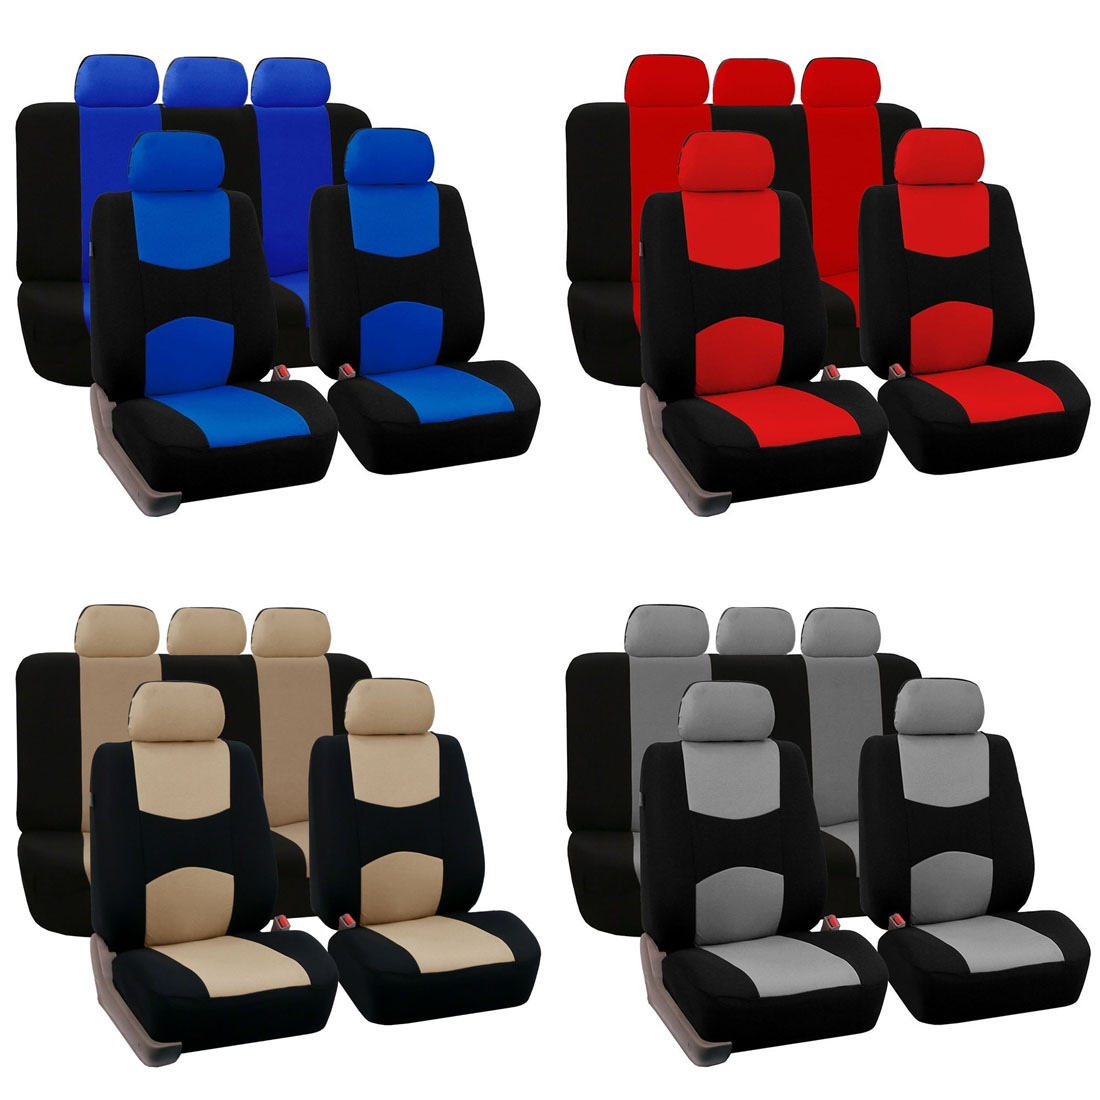 Dewtreetali 9pcs/4pcs Set Rear Front Car Seat Cover Universal Automobiles Seat Covers Protector Polyester Four Seasons dewtreetali universal automoblies seat cover four seaons car seat protector full set car accessories car styling for vw bmw audi